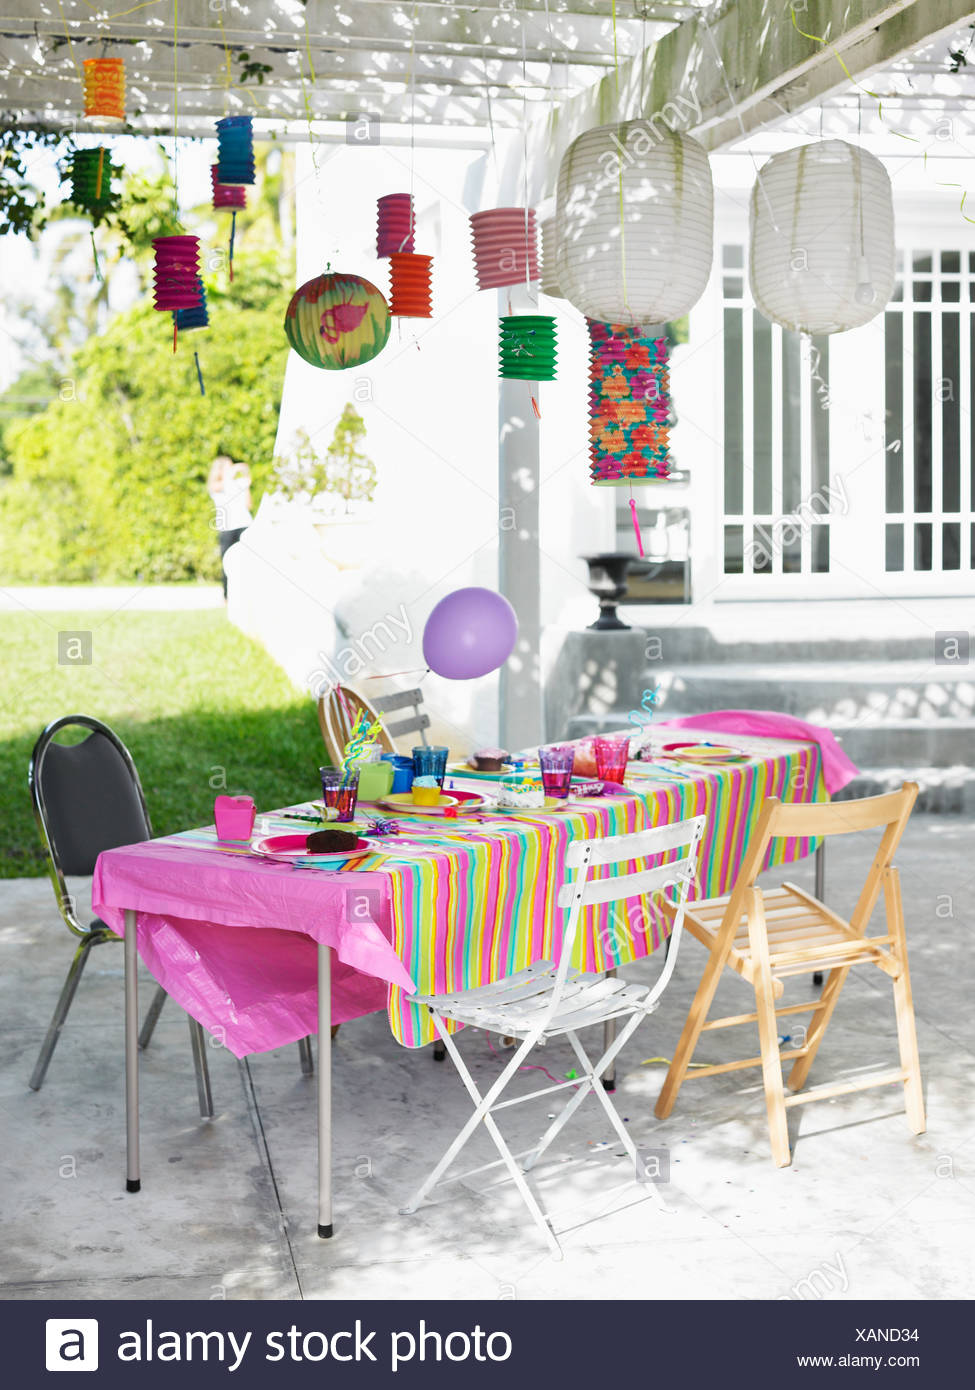 Table Absence Messy Party Stockfotos & Table Absence Messy Party ...